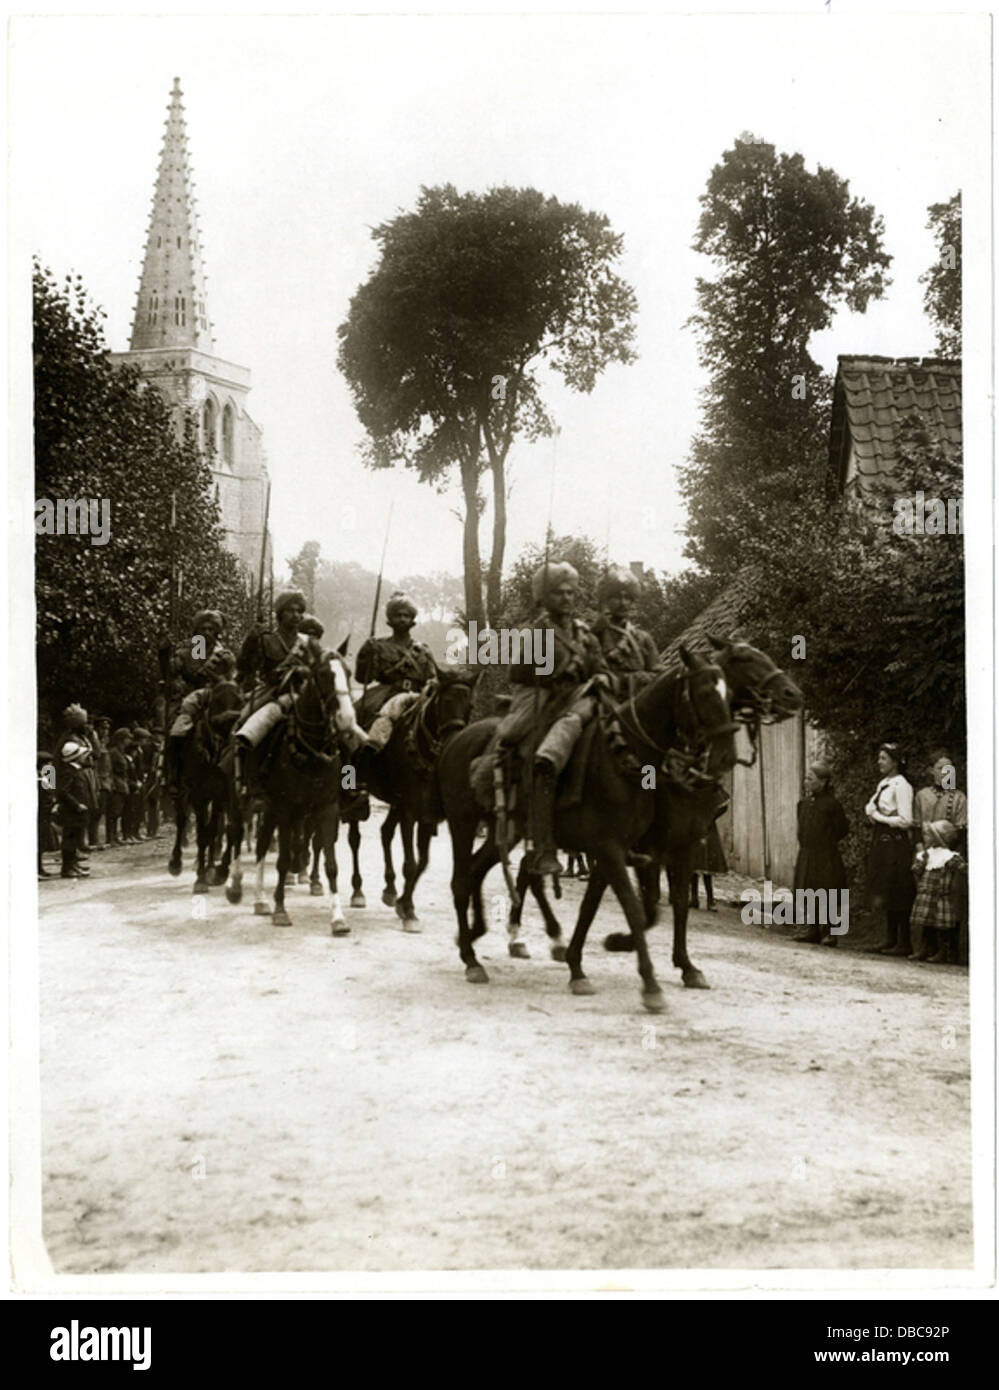 Indian cavalry marching through a French village Estr C3 A9e Blanche (Photo 24-115) - Stock Image